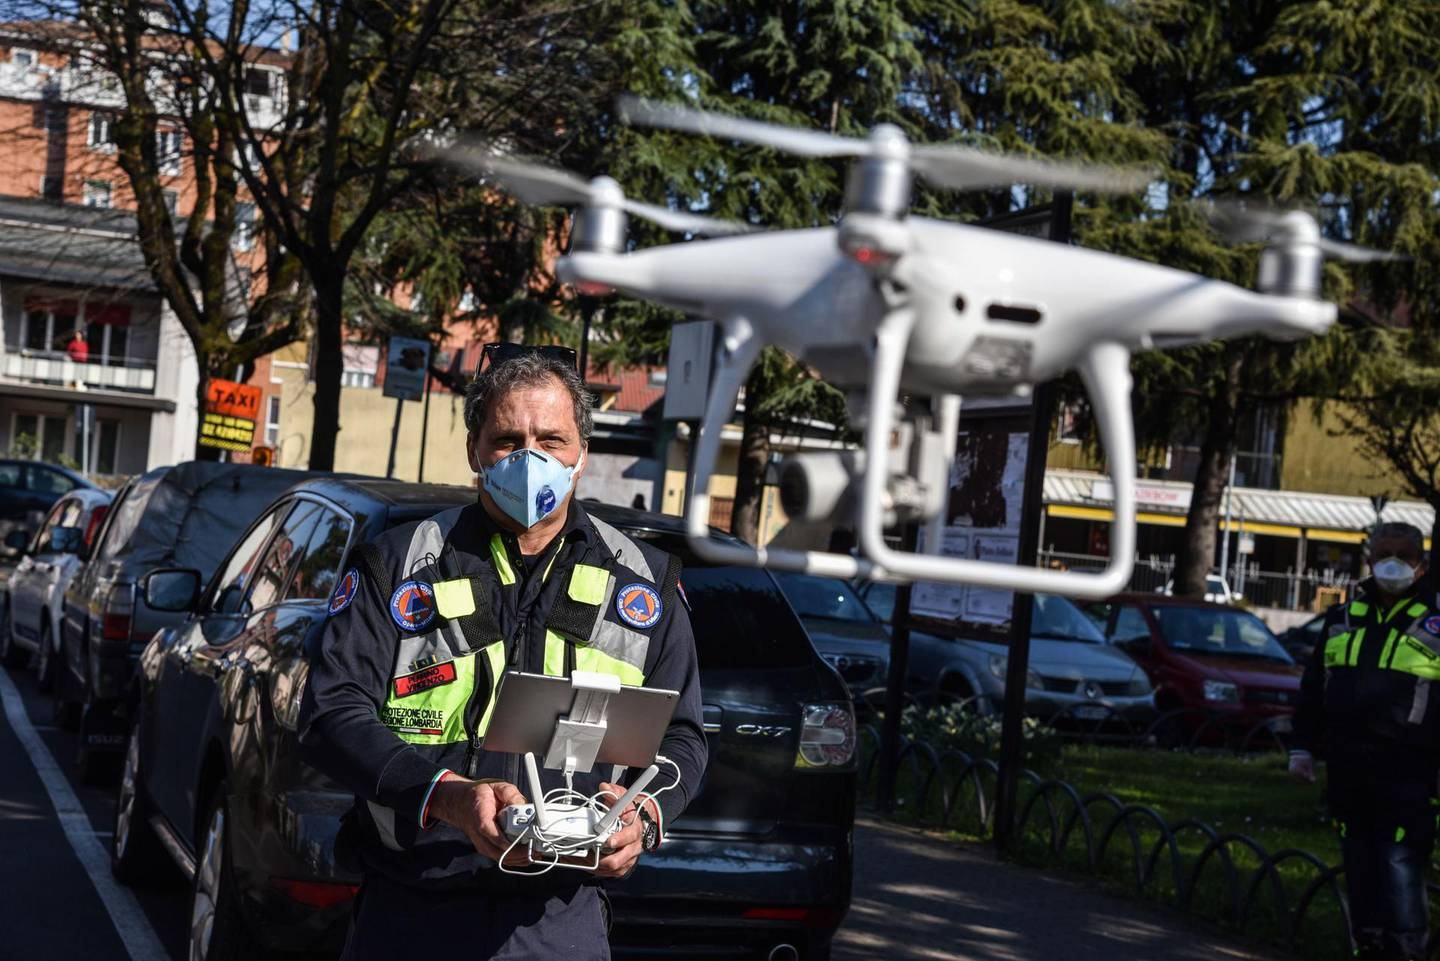 epa08319147 A drone pilot of the Civil Protection agency operates one of the three drones supplied to the municipality of Opera, near Milan, 24 March 2020. The drones are used to monitor citizens' compliance with the rules restricting movement amid the national lockdown implemented in a bid to slow down the ongoing pandemic of the COVID-19 disease caused by the SARS-CoV-2 coronavirus that is ravaging the Mediterranean country.  EPA/MATTEO CORNER